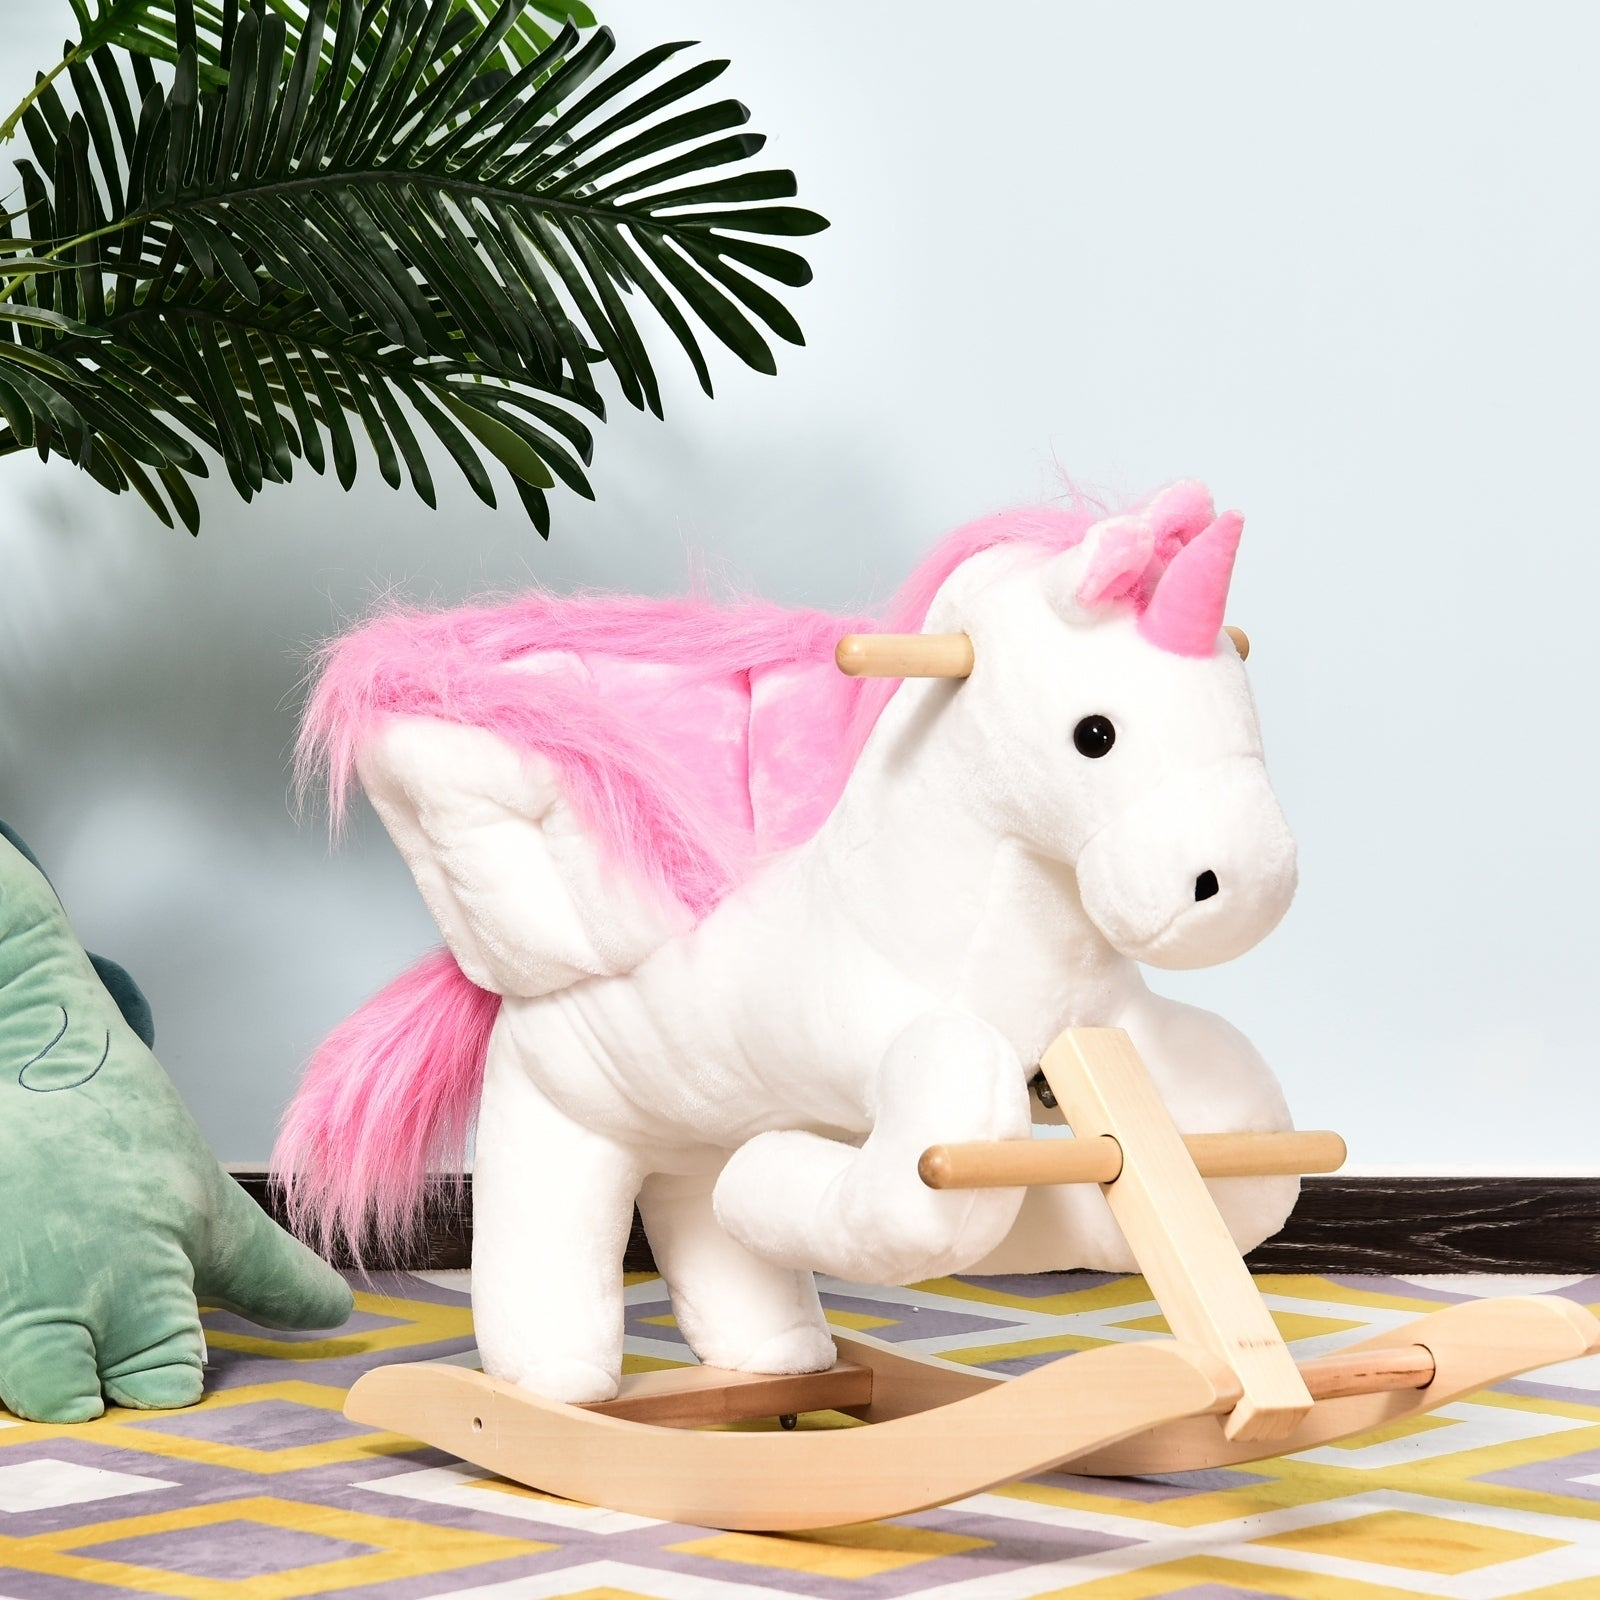 Qaba Kids Wooden Plush Ride On Unicorn Rocking Horse Chair Toy With Sing Along Songs On Sale Overstock 22409038